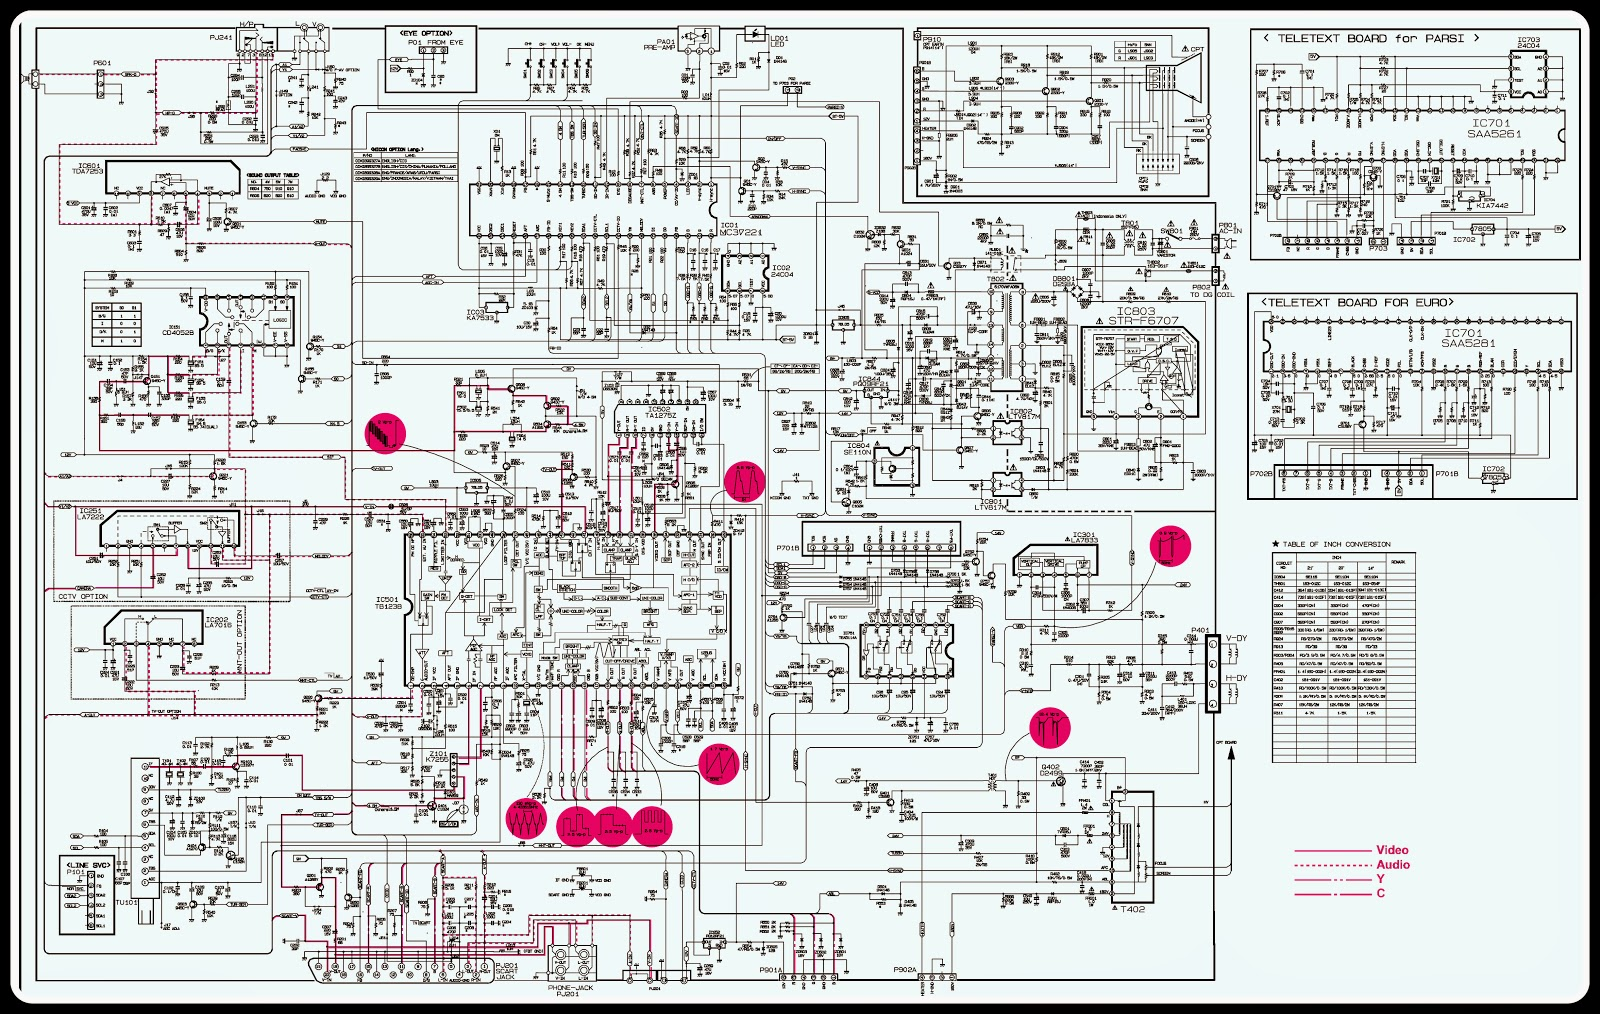 small resolution of tv schematic diagrams free download wiring diagram post lg tv schematic diagrams wiring diagram post tv